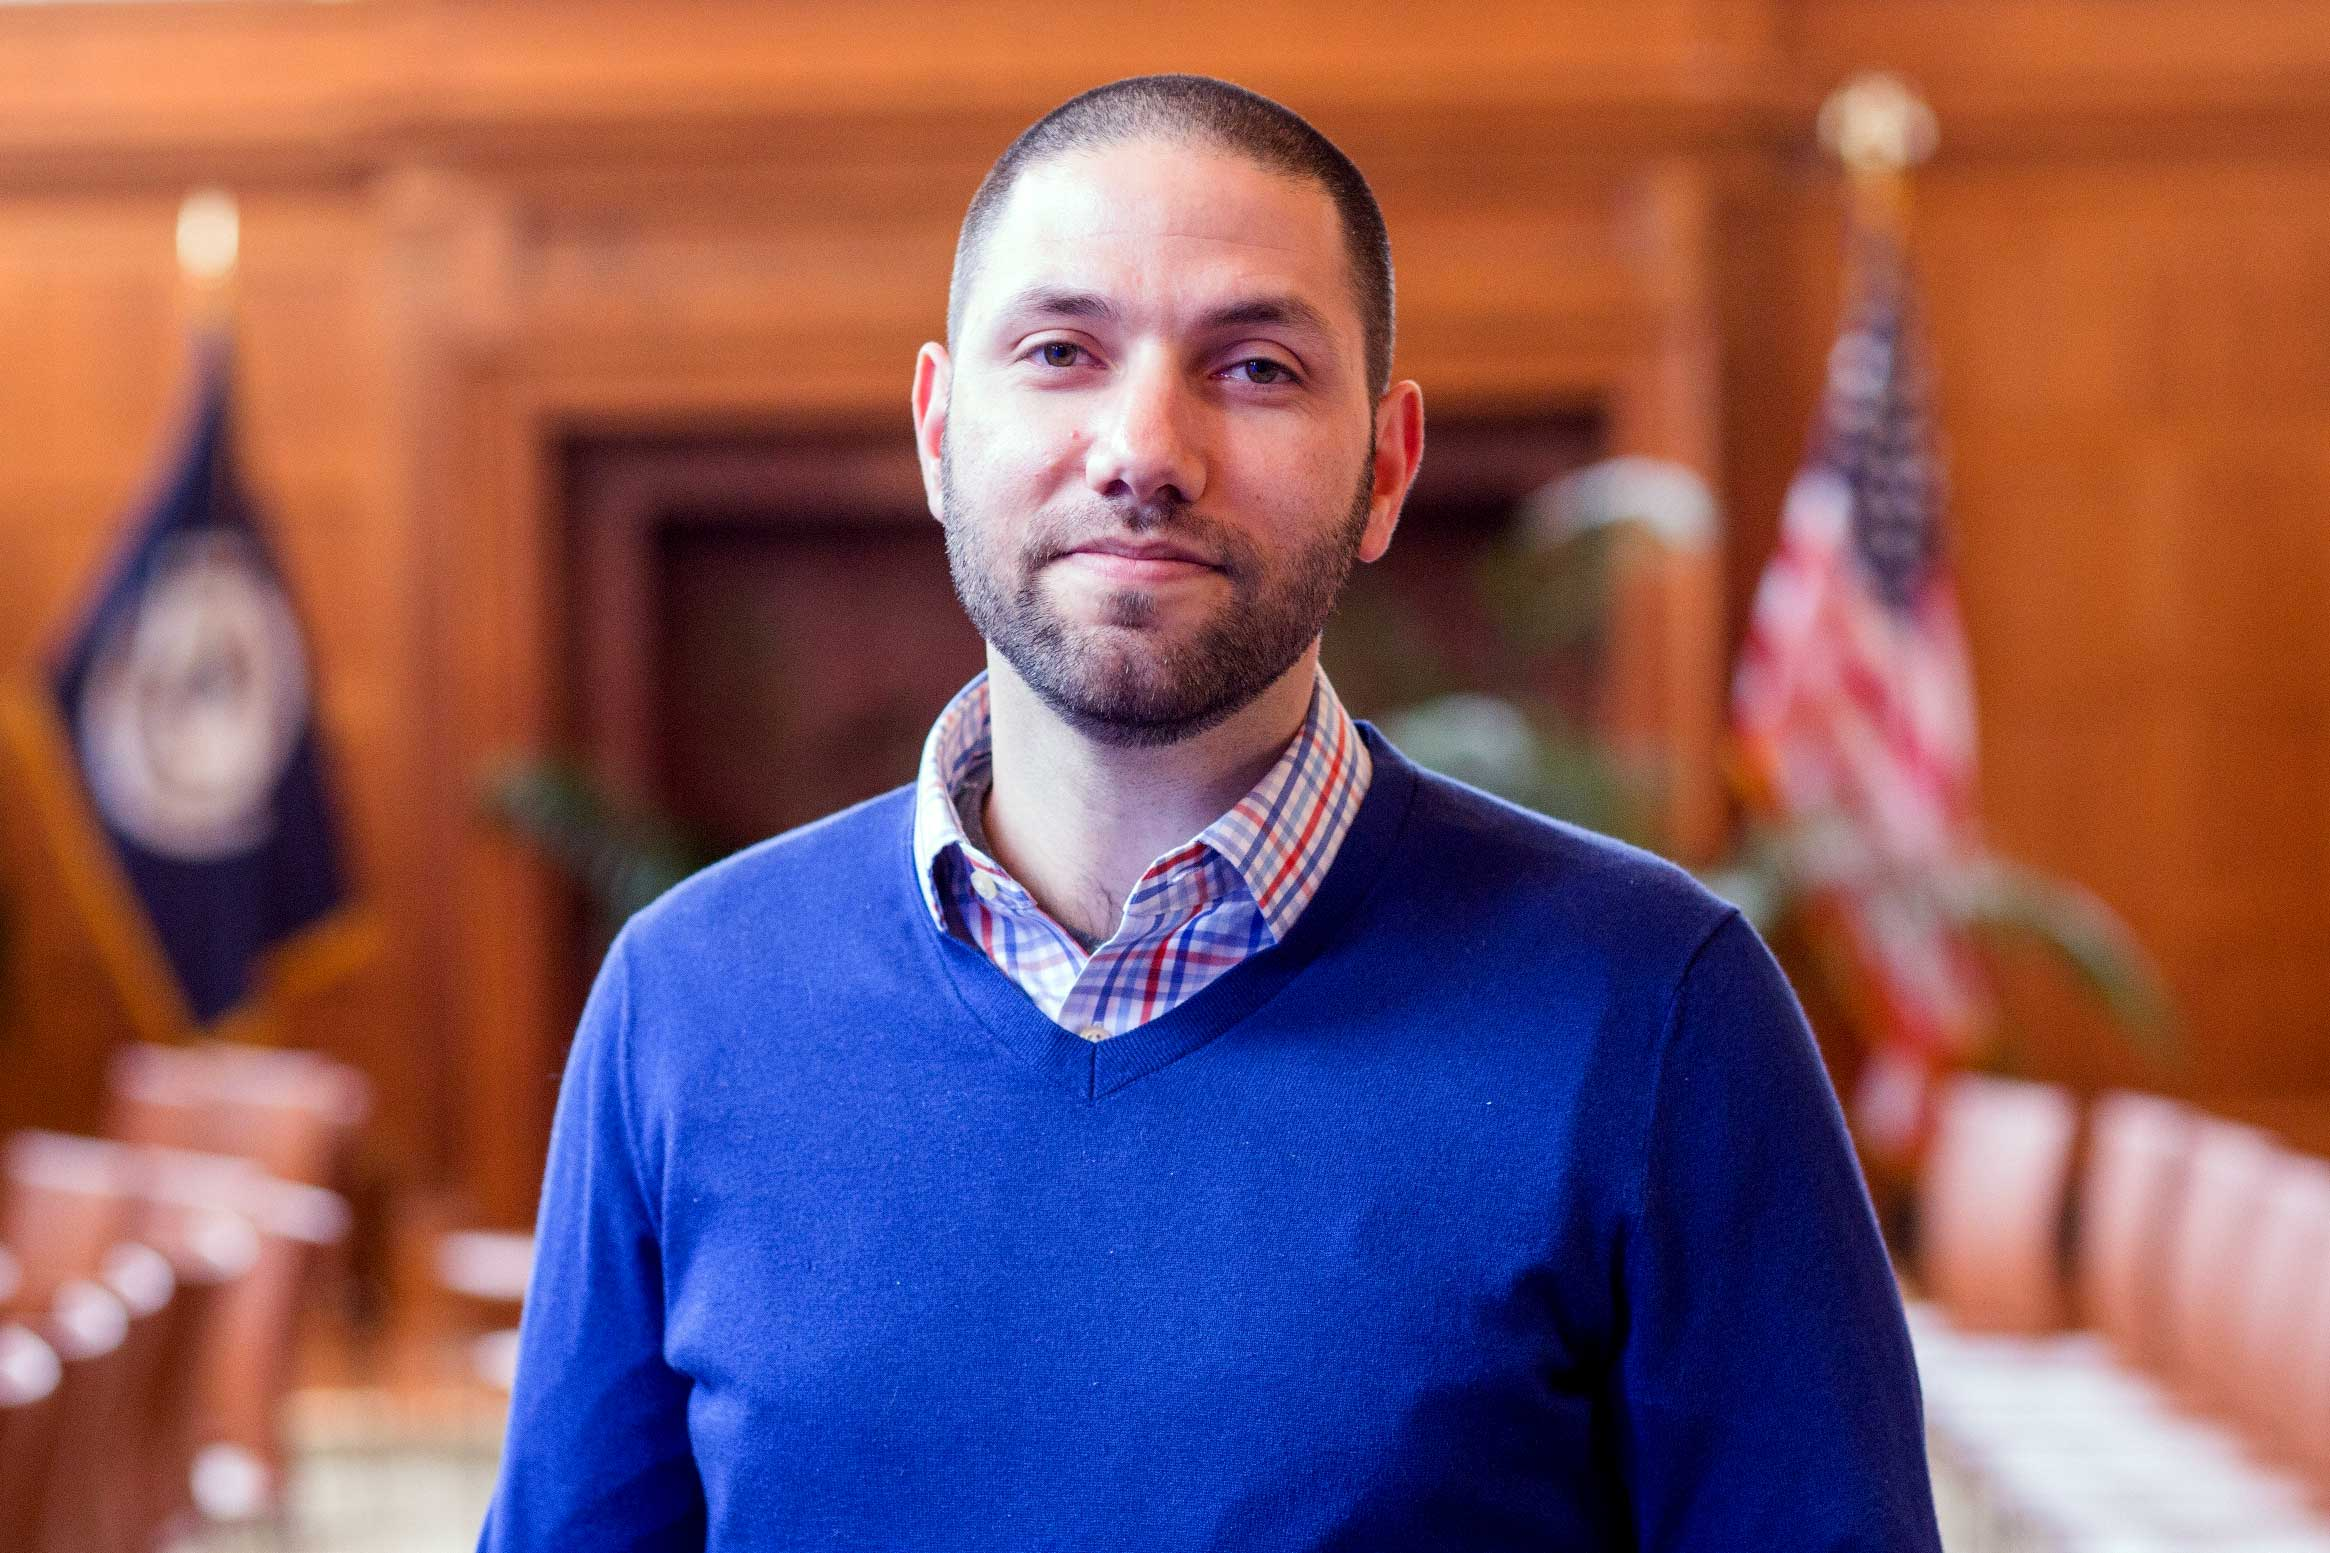 Benjamin Converse is an assistant professor of public policy and psychology in the Frank Batten School of Leadership and Public Policy and the Department of Psychology.